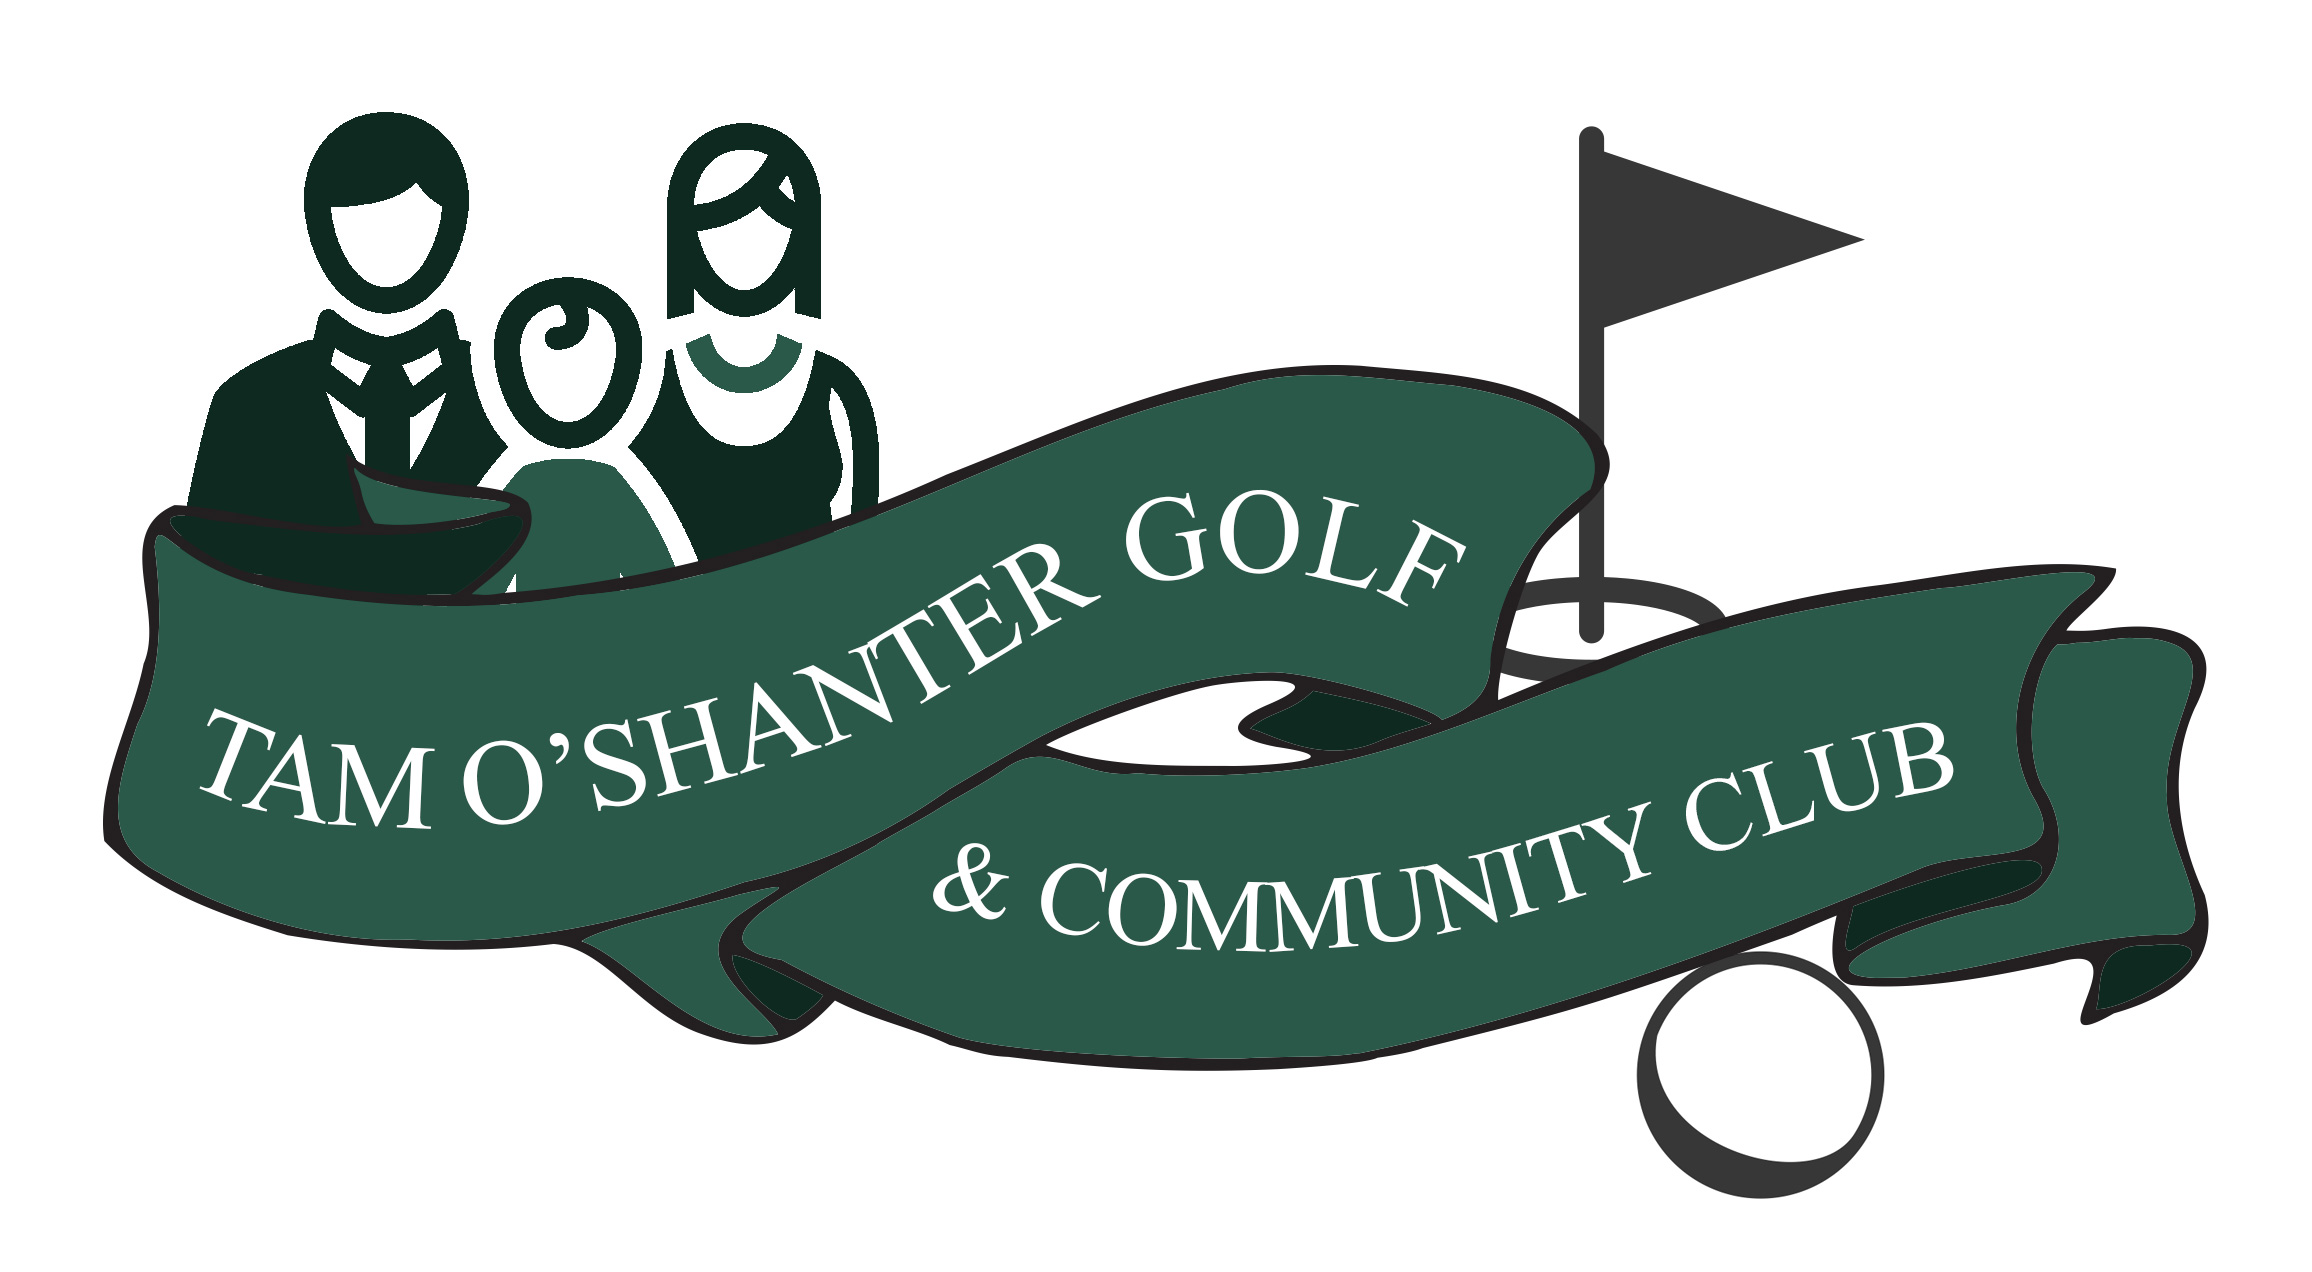 Tam O'Shanter Golf & Community Club